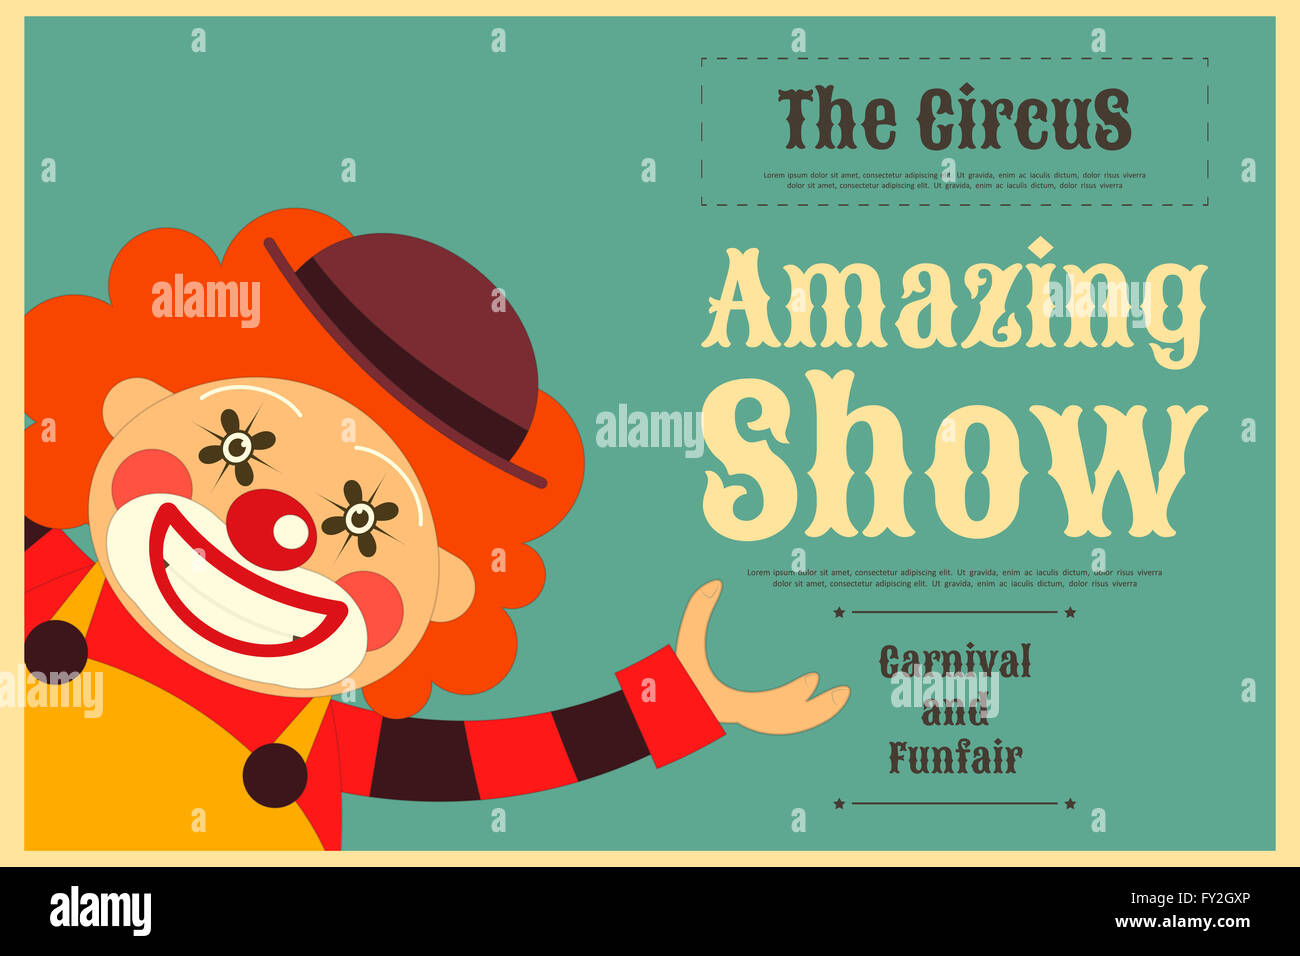 Circus Poster In Vintage Style Cartoon Clown Illustration